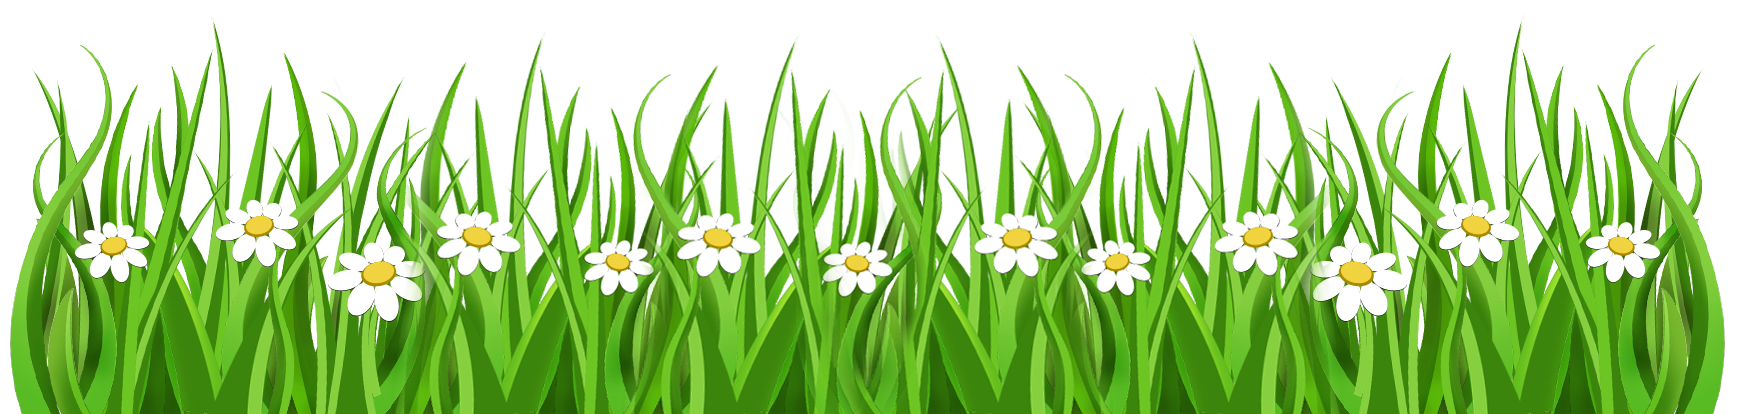 Grass clipart free images 2